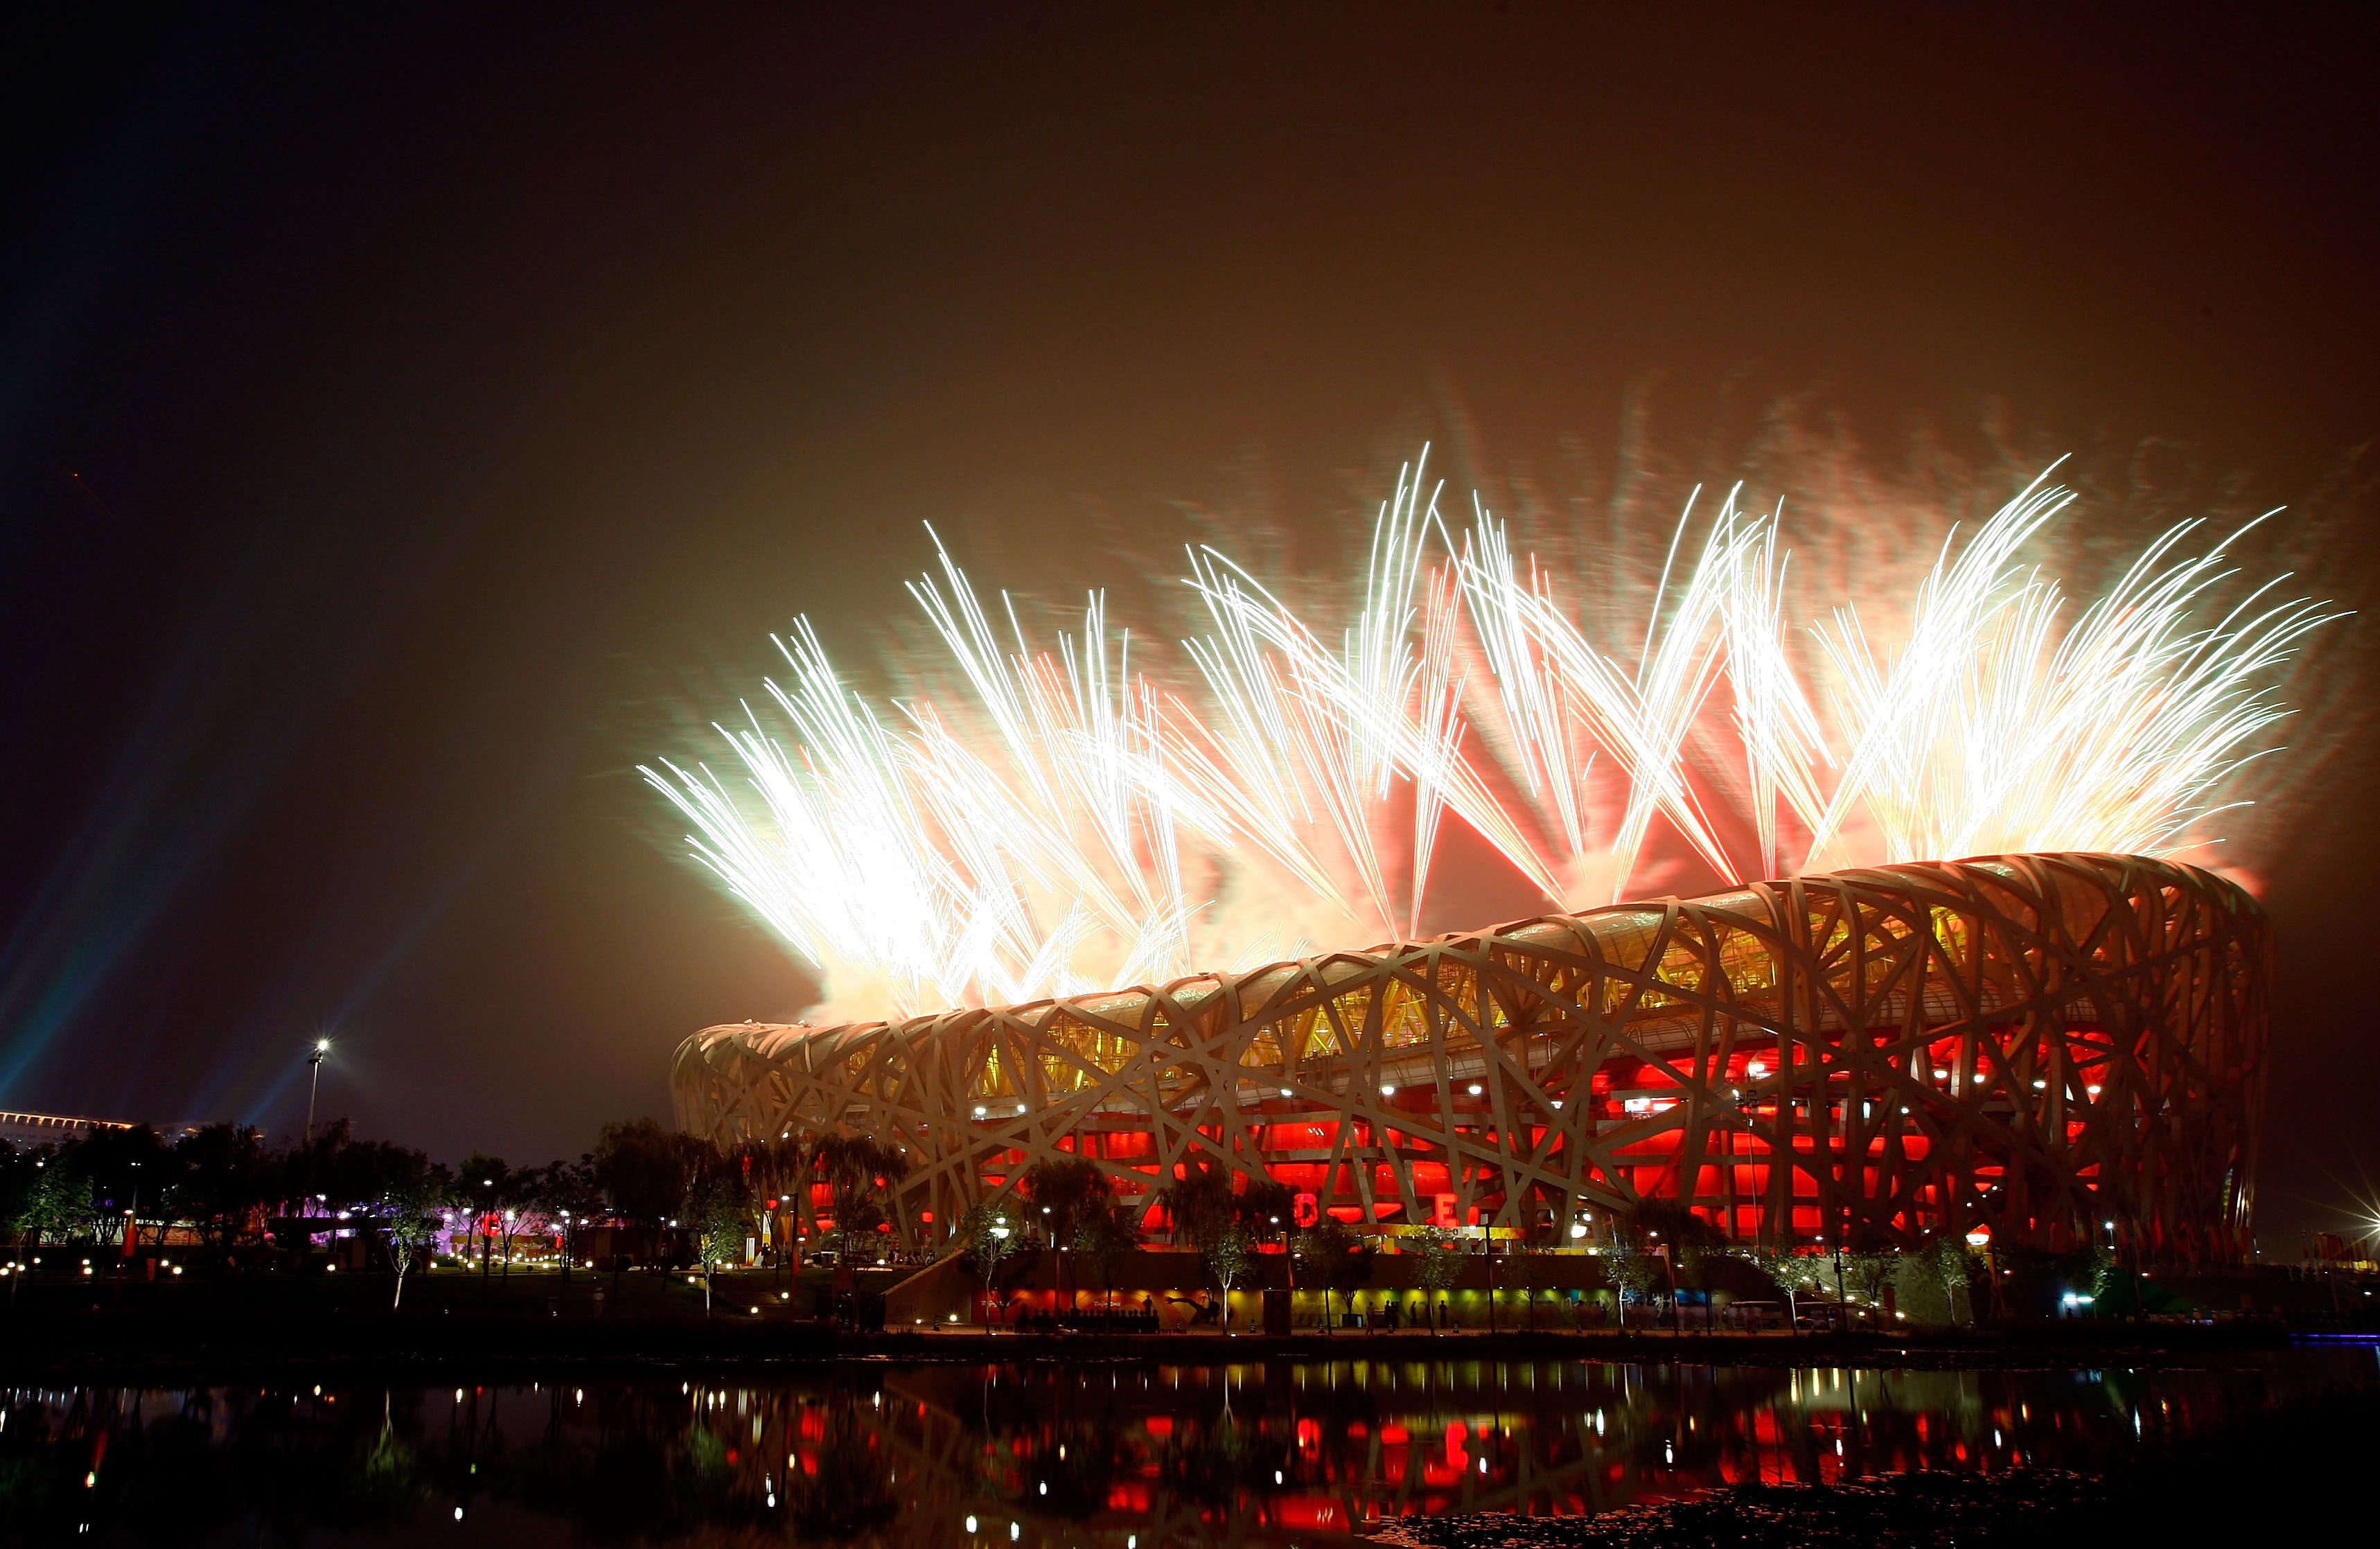 I Want To Go To Beijing Nest One Day Just Visited Beijing Birds Nest Breath Taking Now Fireworks Photography Event Marketing Olympics Opening Ceremony